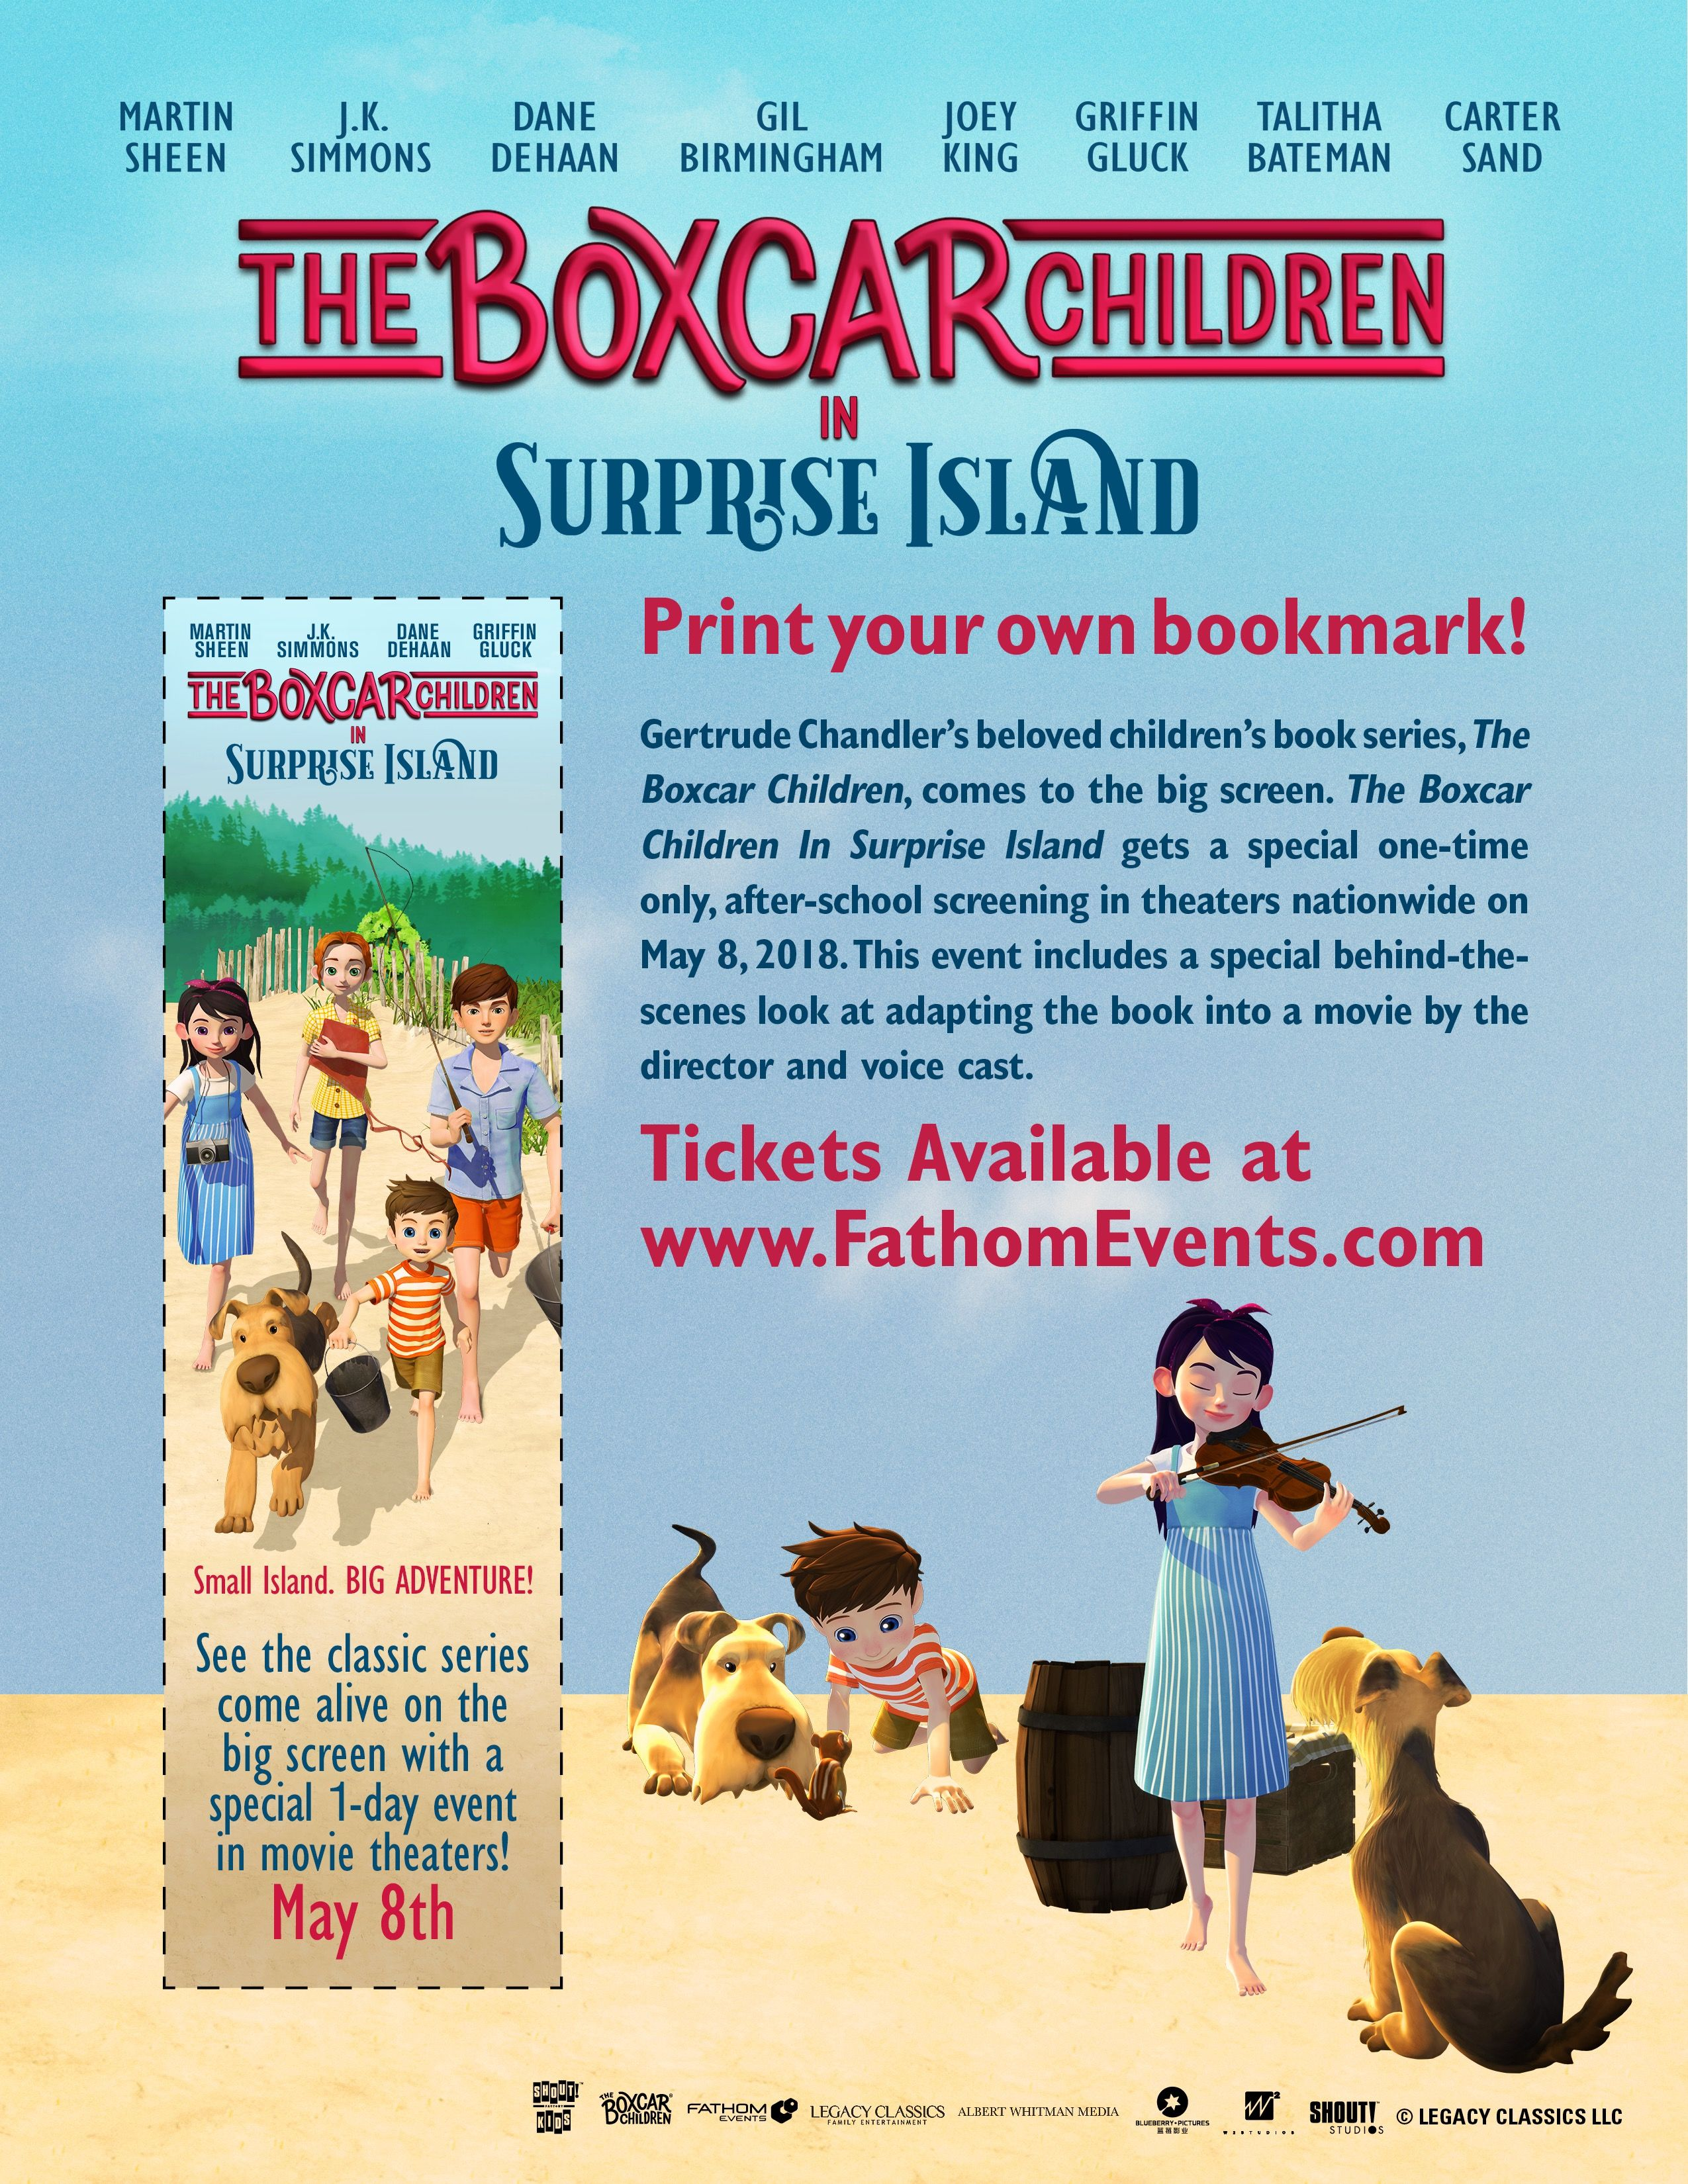 The Boxcar Children - Surprise Island coming to movie theaters ...